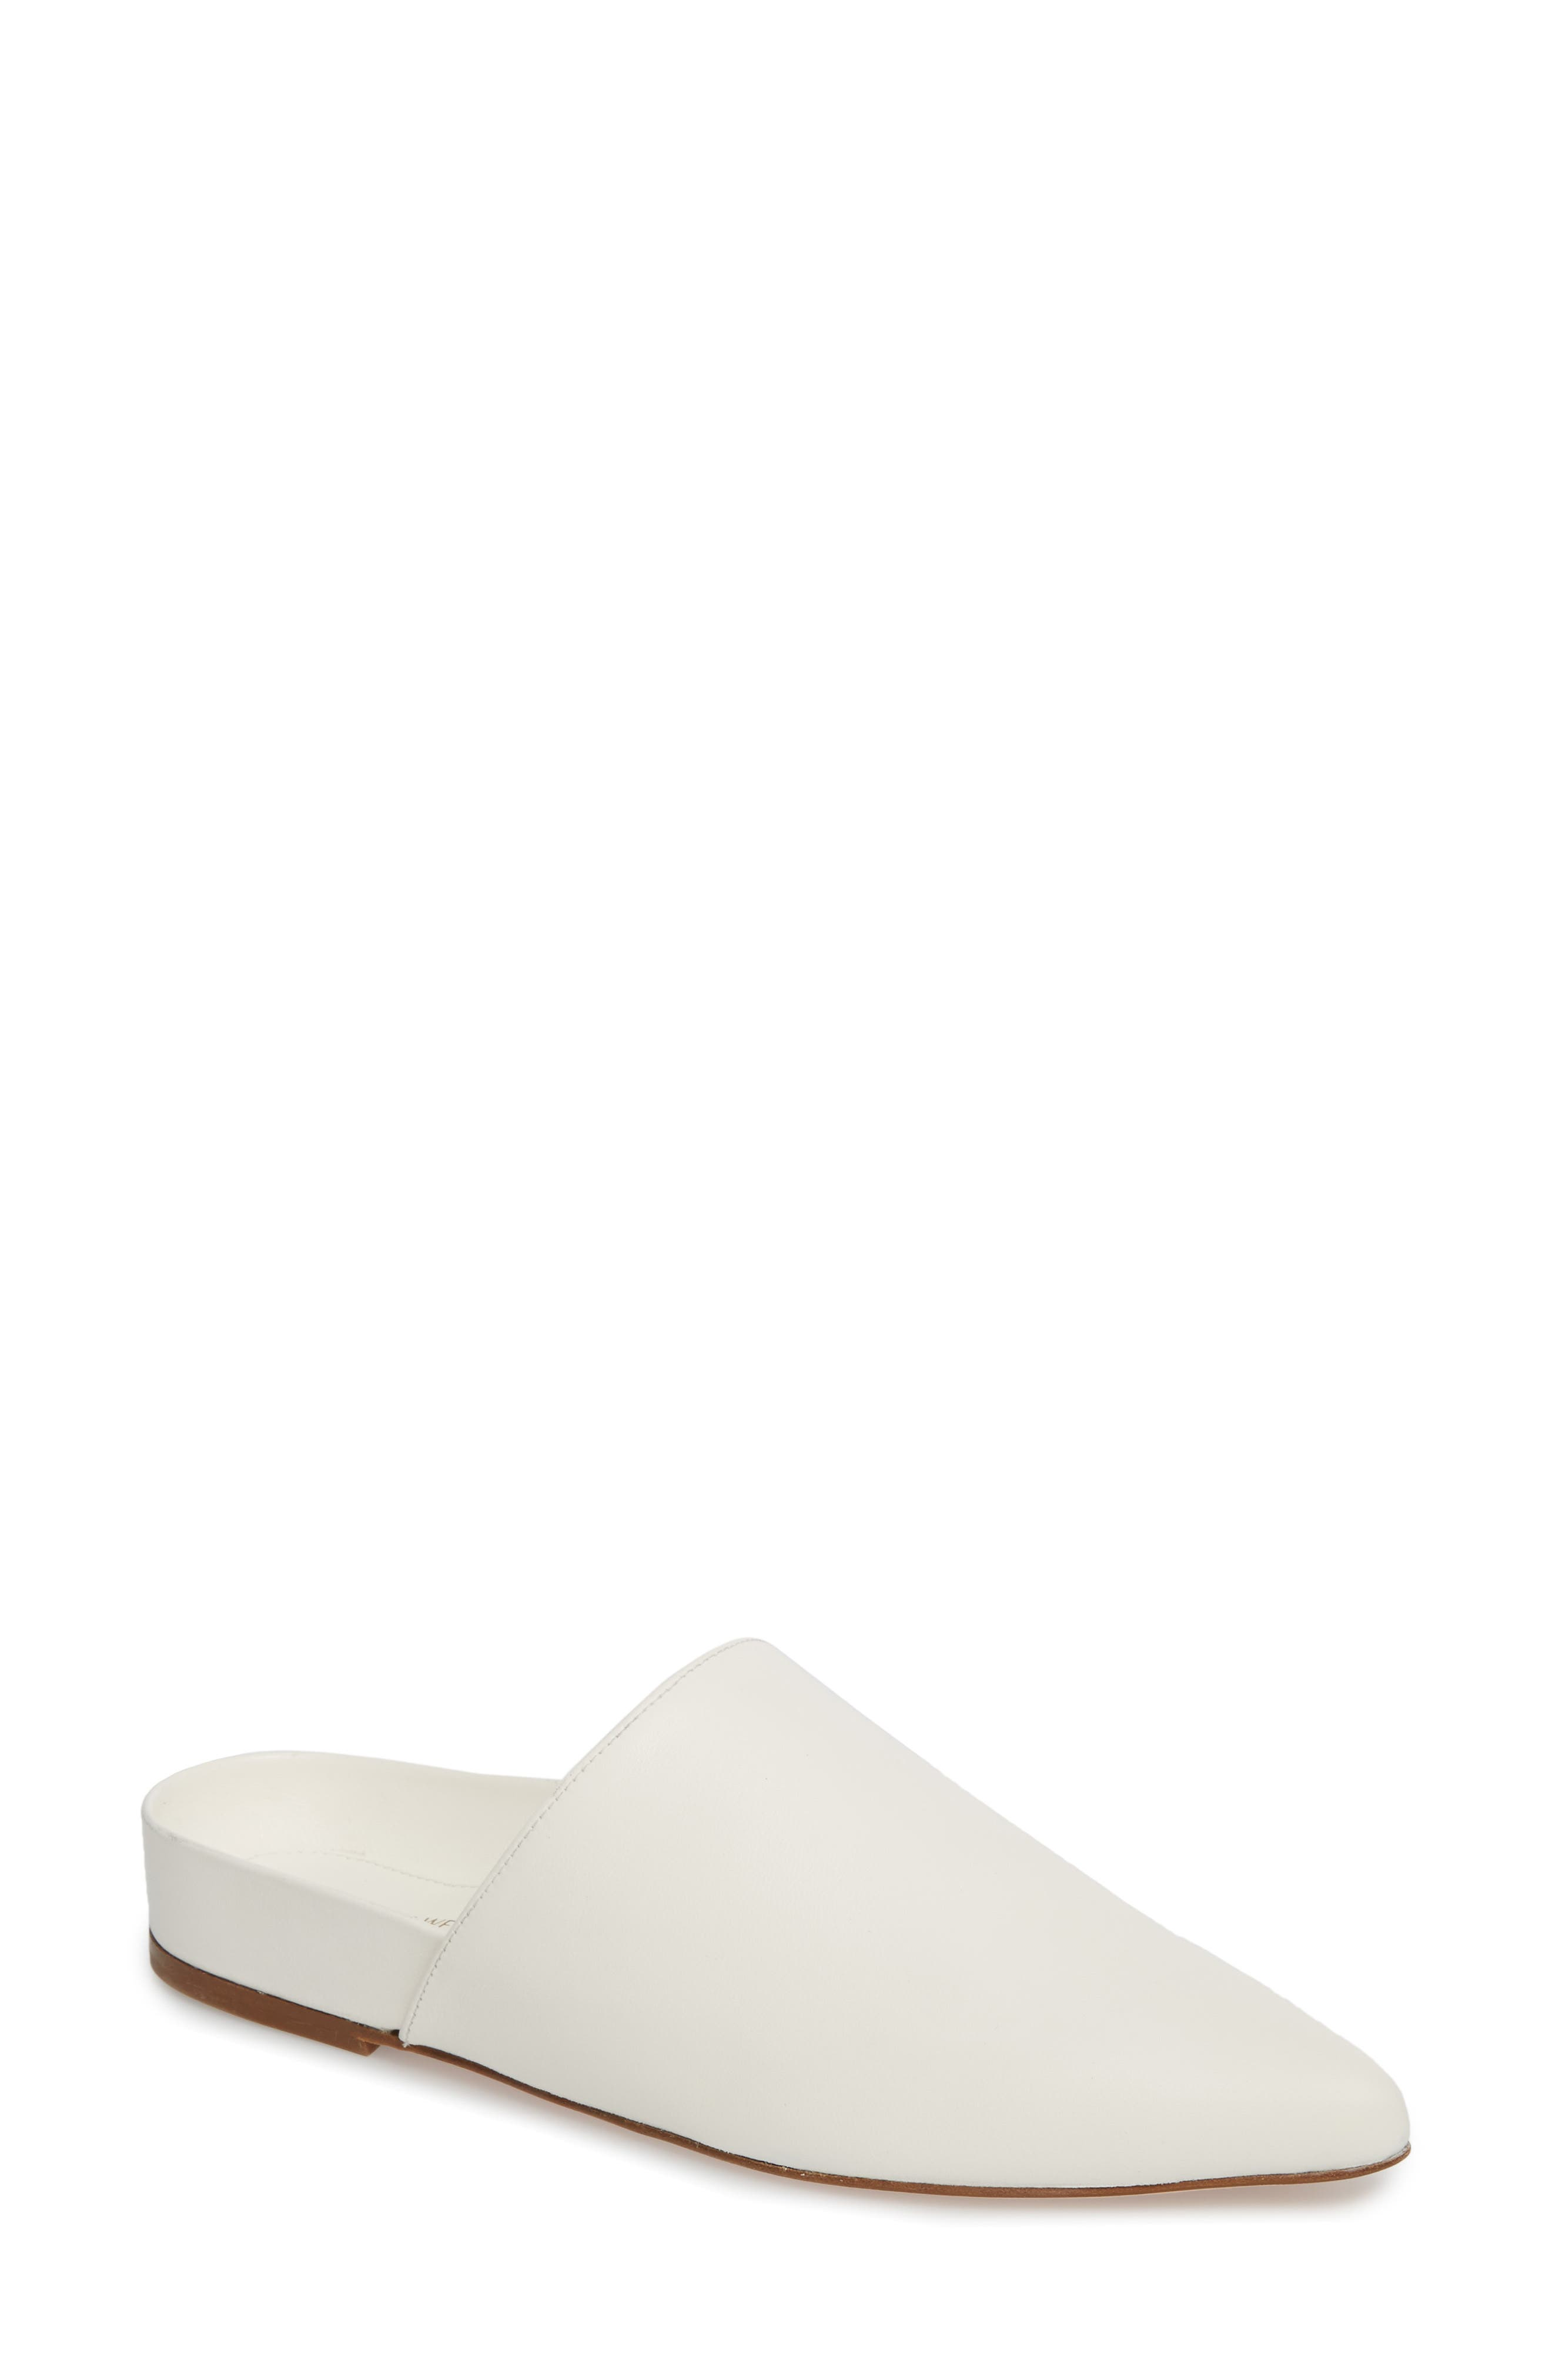 Studio Pointy Toe Flat Mule,                             Main thumbnail 1, color,                             White Smooth